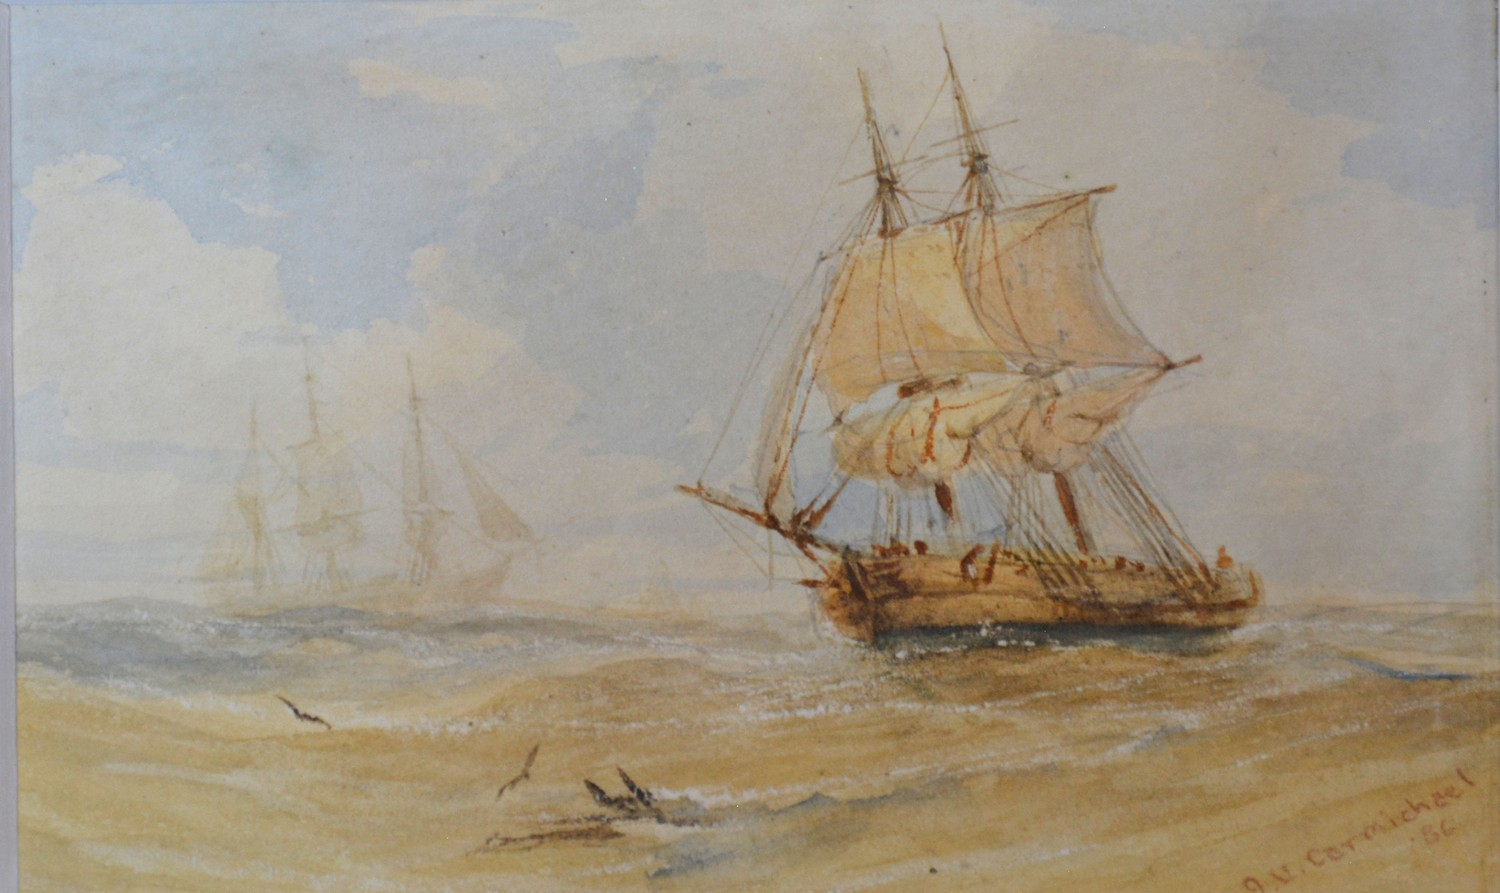 James Wilson Carmichael, ships in a rough sea and a ships hulk, a pair of watercolours, signed, - Image 2 of 4